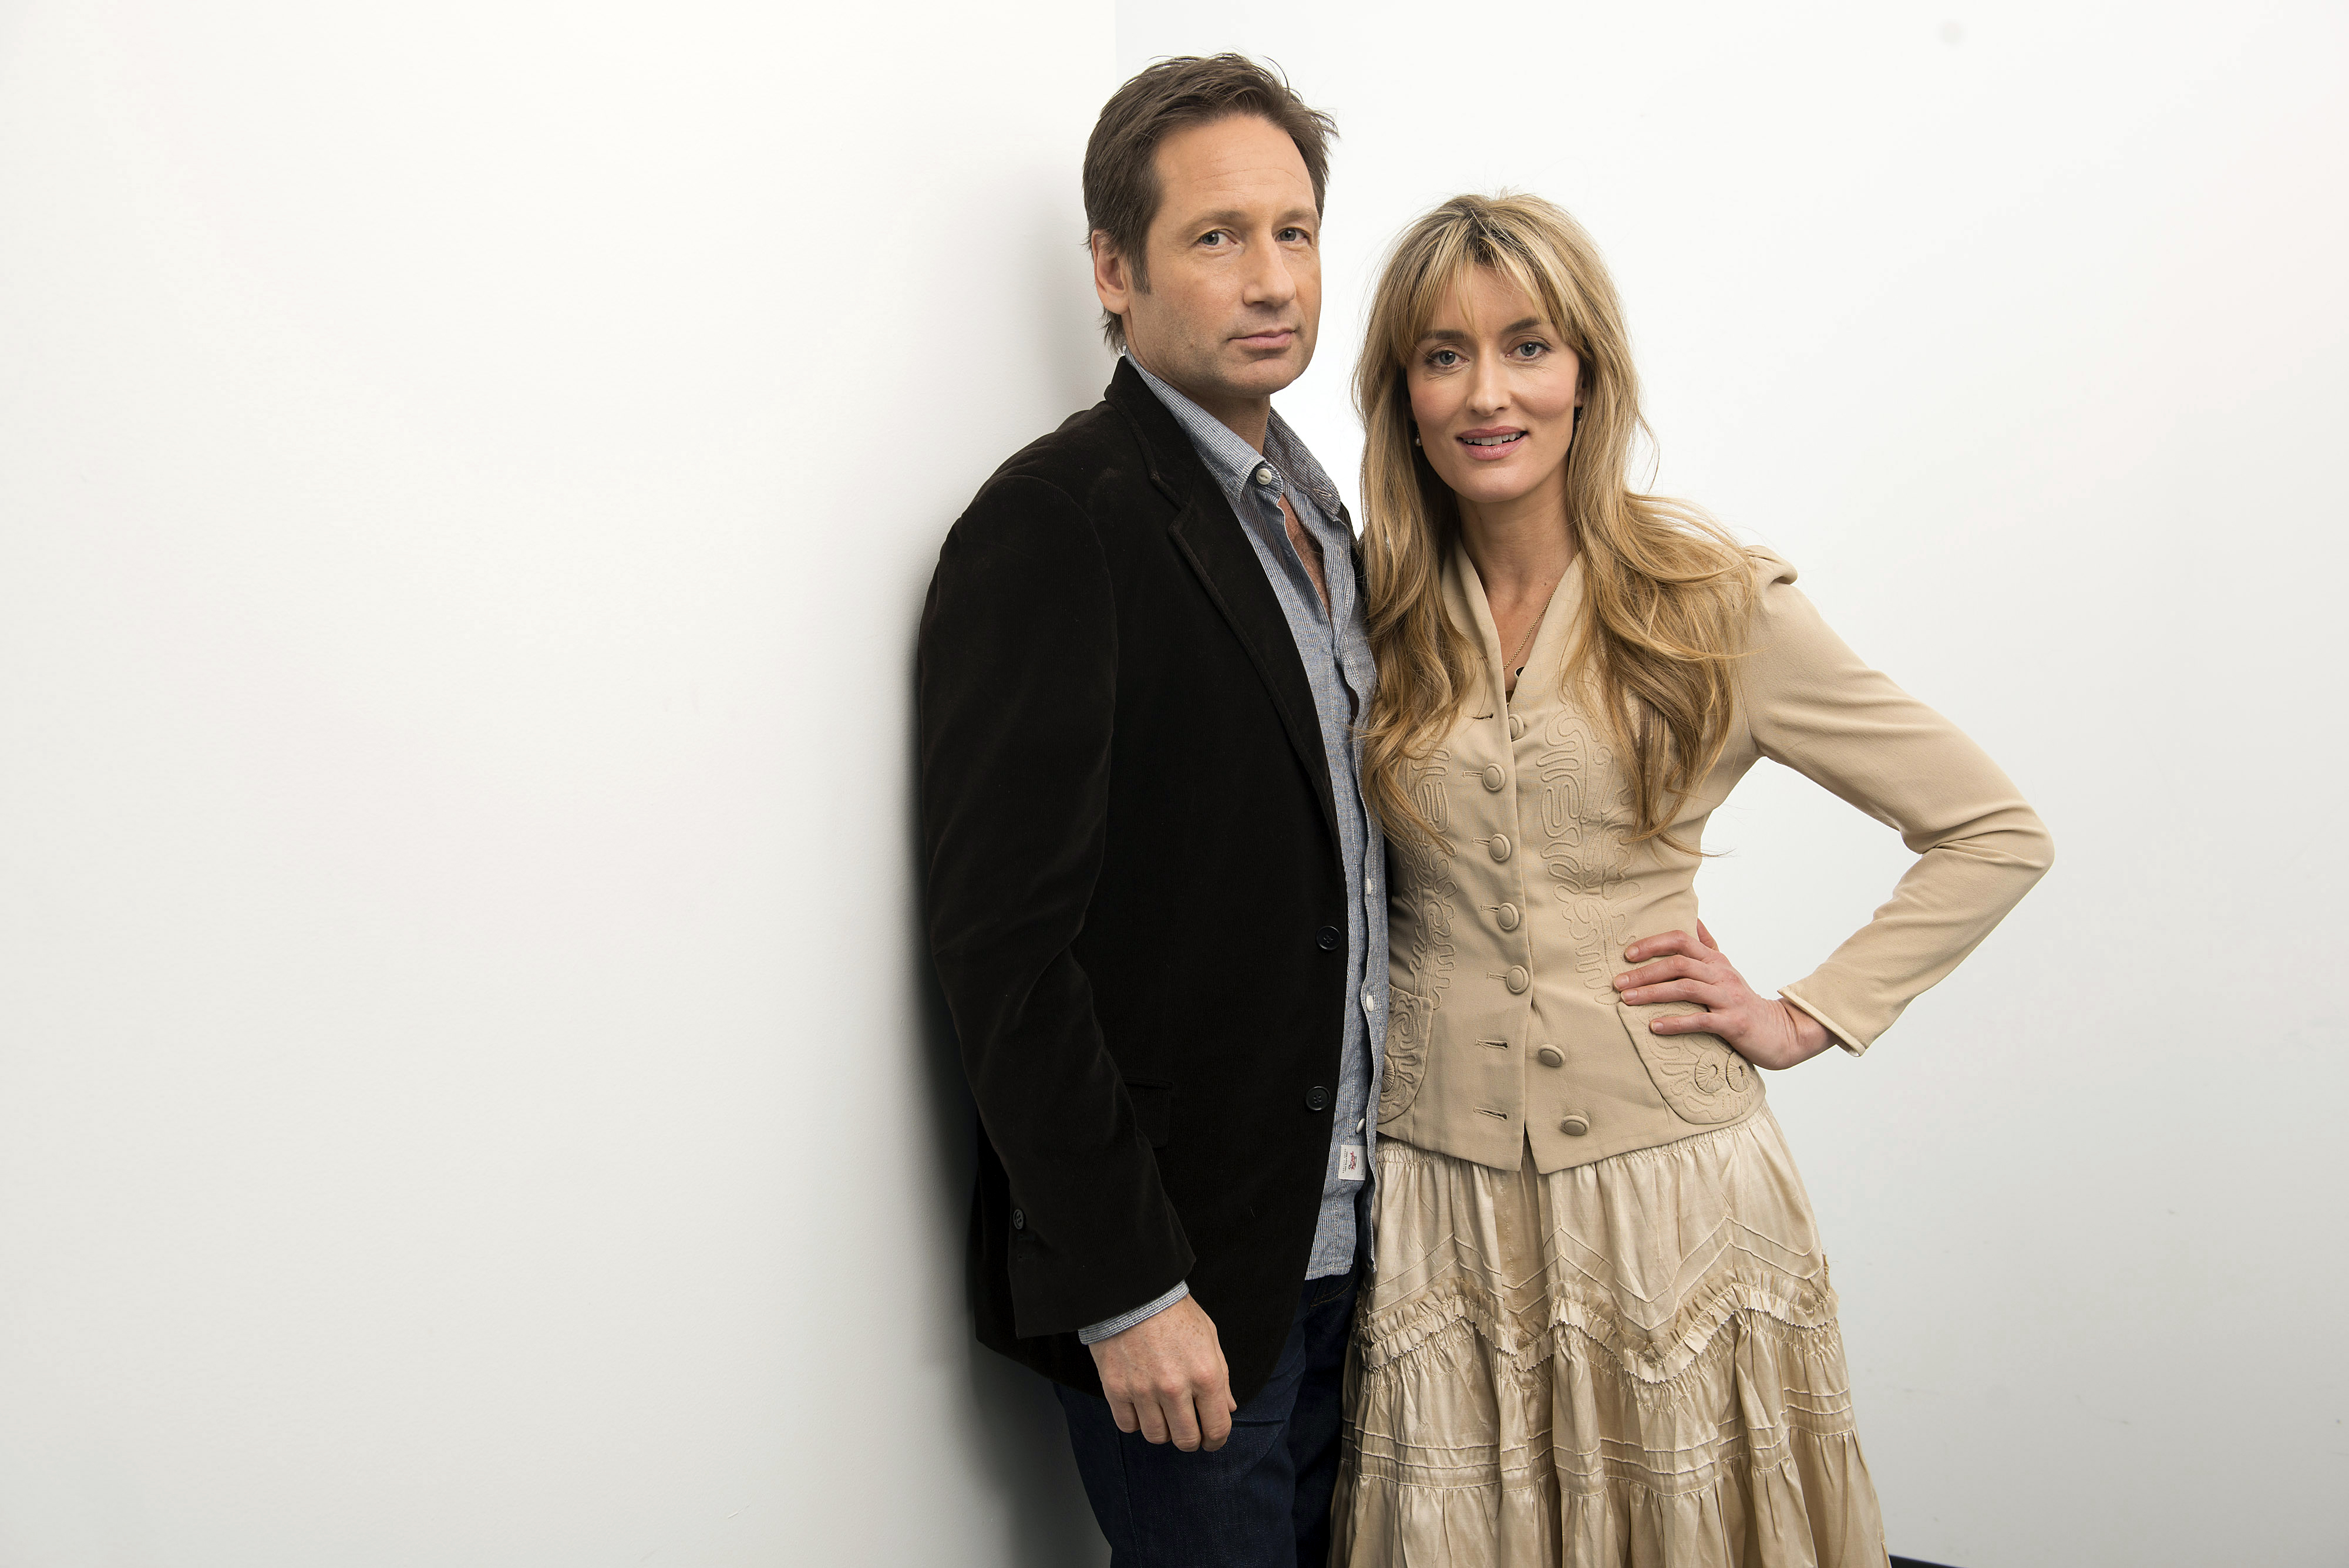 This Jan. 9, 2013 photo shows actress Natascha McElhone, right, and actor David Duchovny in New York. McElhone and Duchovny s